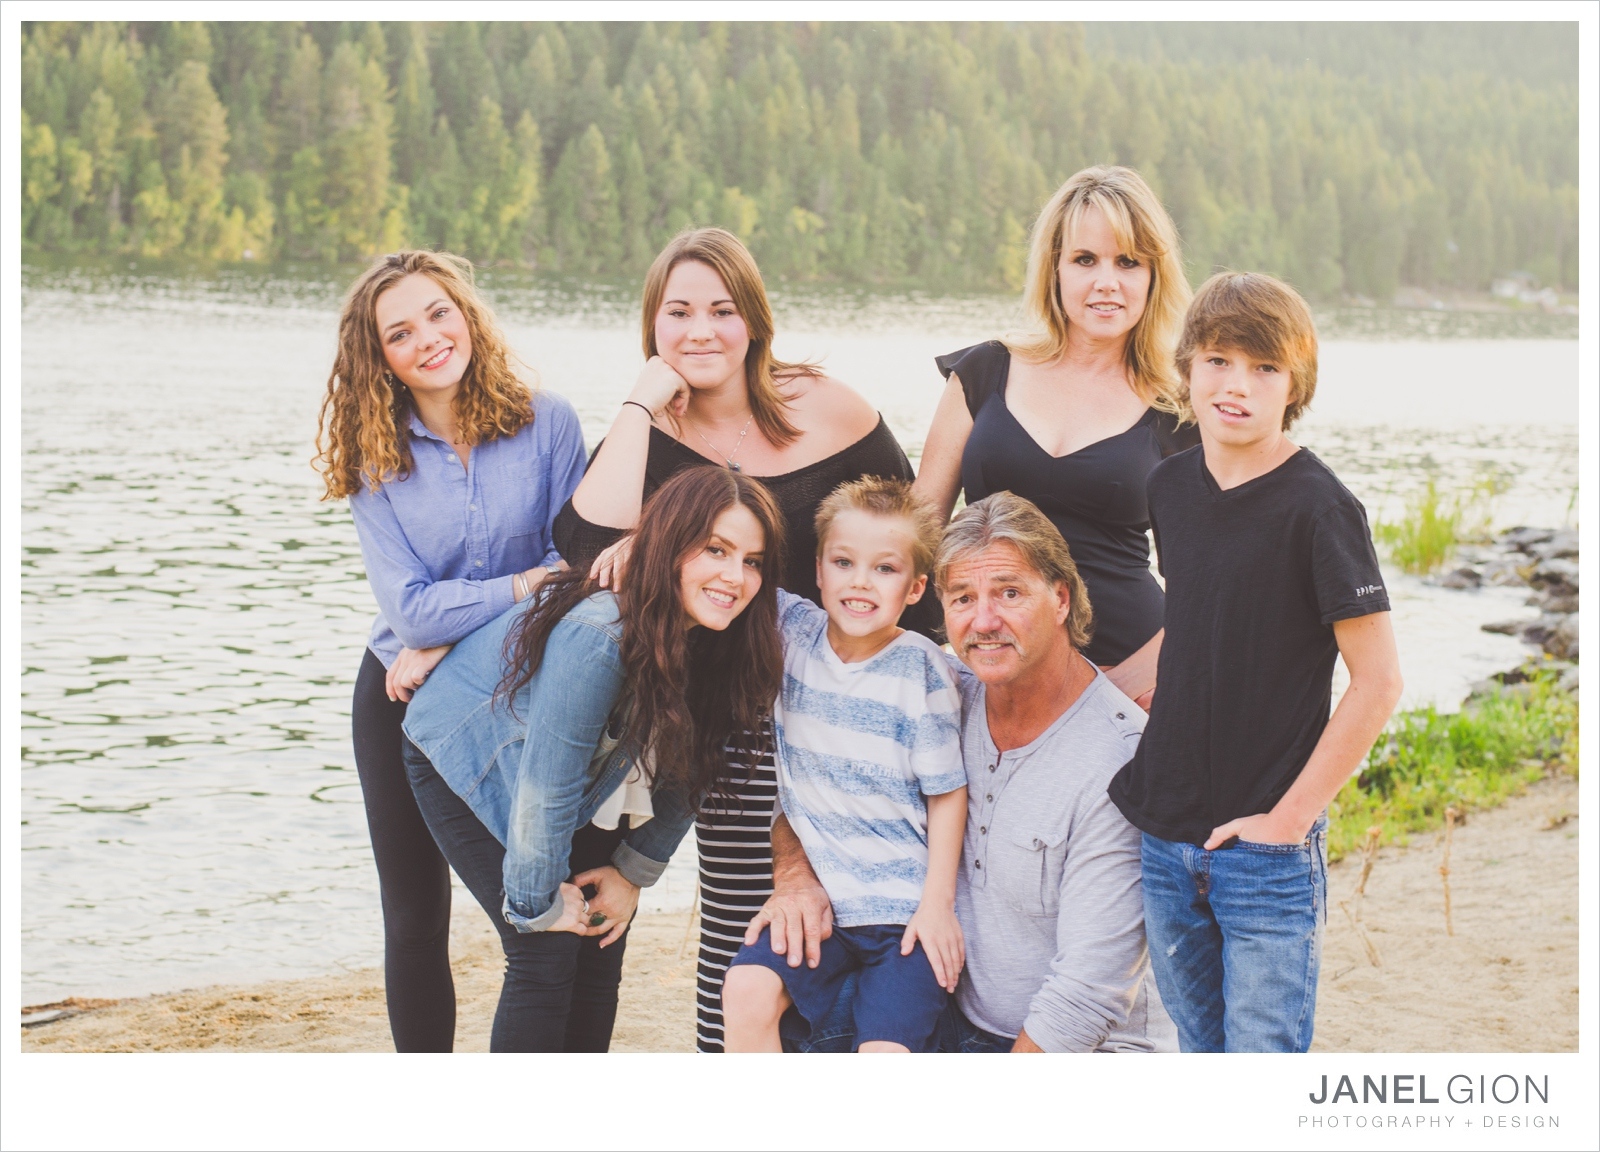 North-Idaho-Family-Children-Photographer-Year-in-Review-Contest-2013-Lifestyle-Family-Portraits-by-Janel-Gion-Photography_0020.jpg